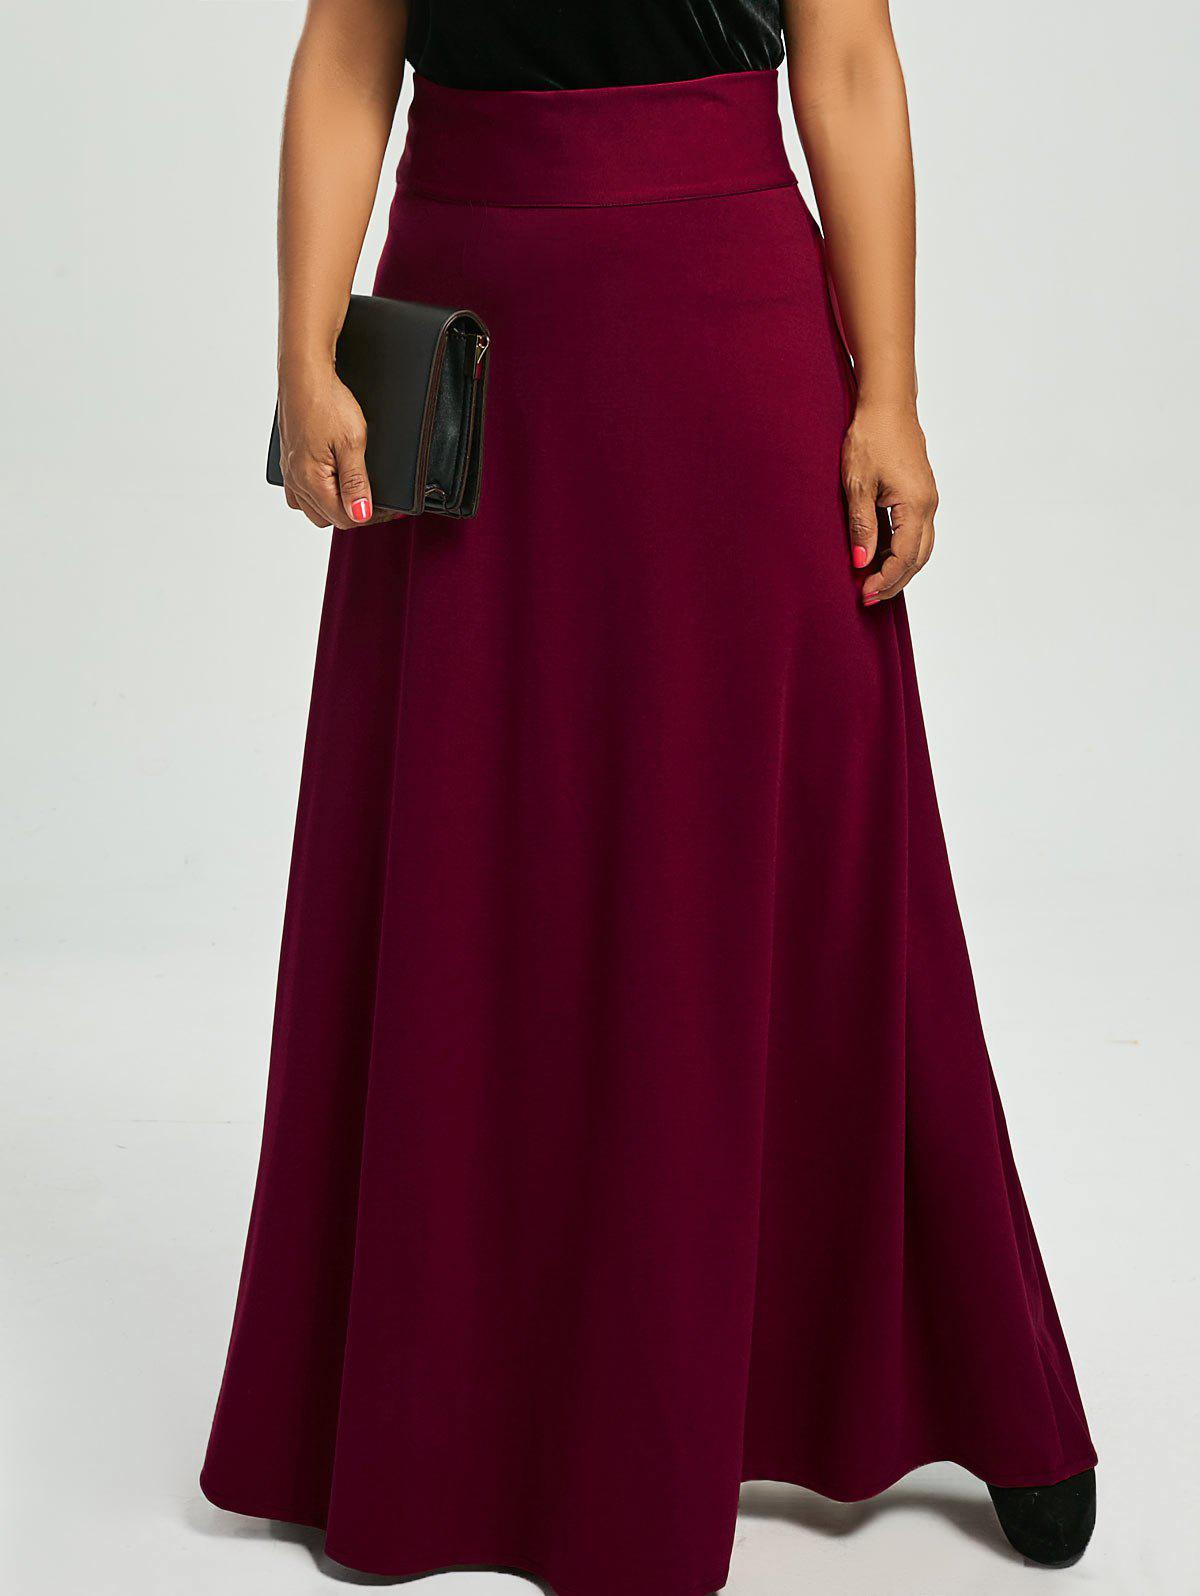 High Waist Plus Size Maxi SkirtWOMEN<br><br>Size: 4XL; Color: WINE RED; Material: Cotton,Cotton Blends,Polyester; Length: Floor-Length; Silhouette: A-Line; Pattern Type: Solid; Season: Fall,Spring; Weight: 0.5500kg; Package Contents: 1 x Skirt;